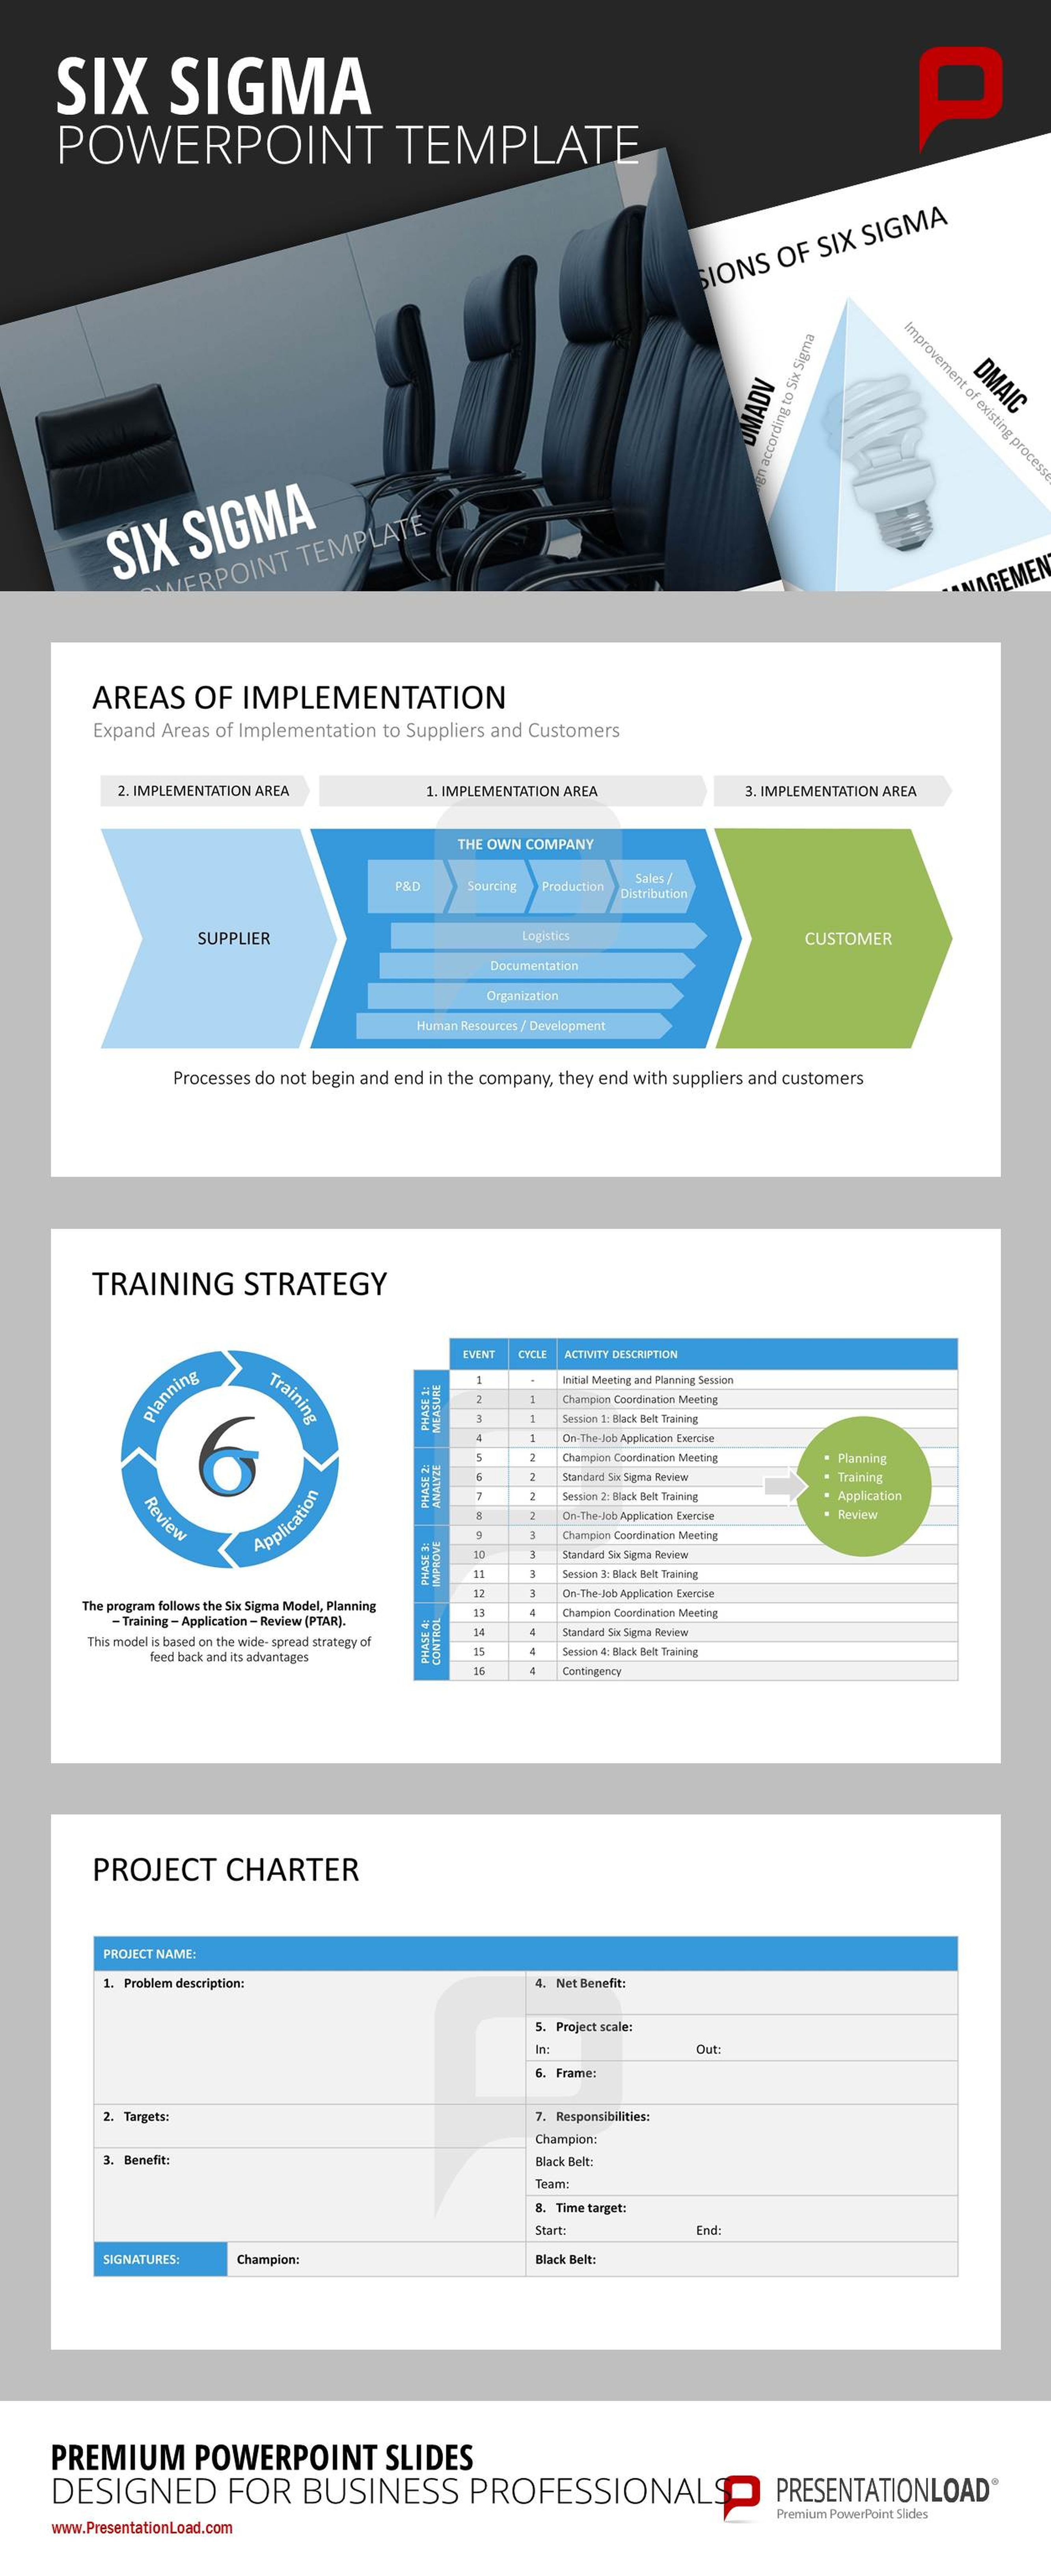 New PowerPoint-Templates: Define, measure, analyze, improve and ...